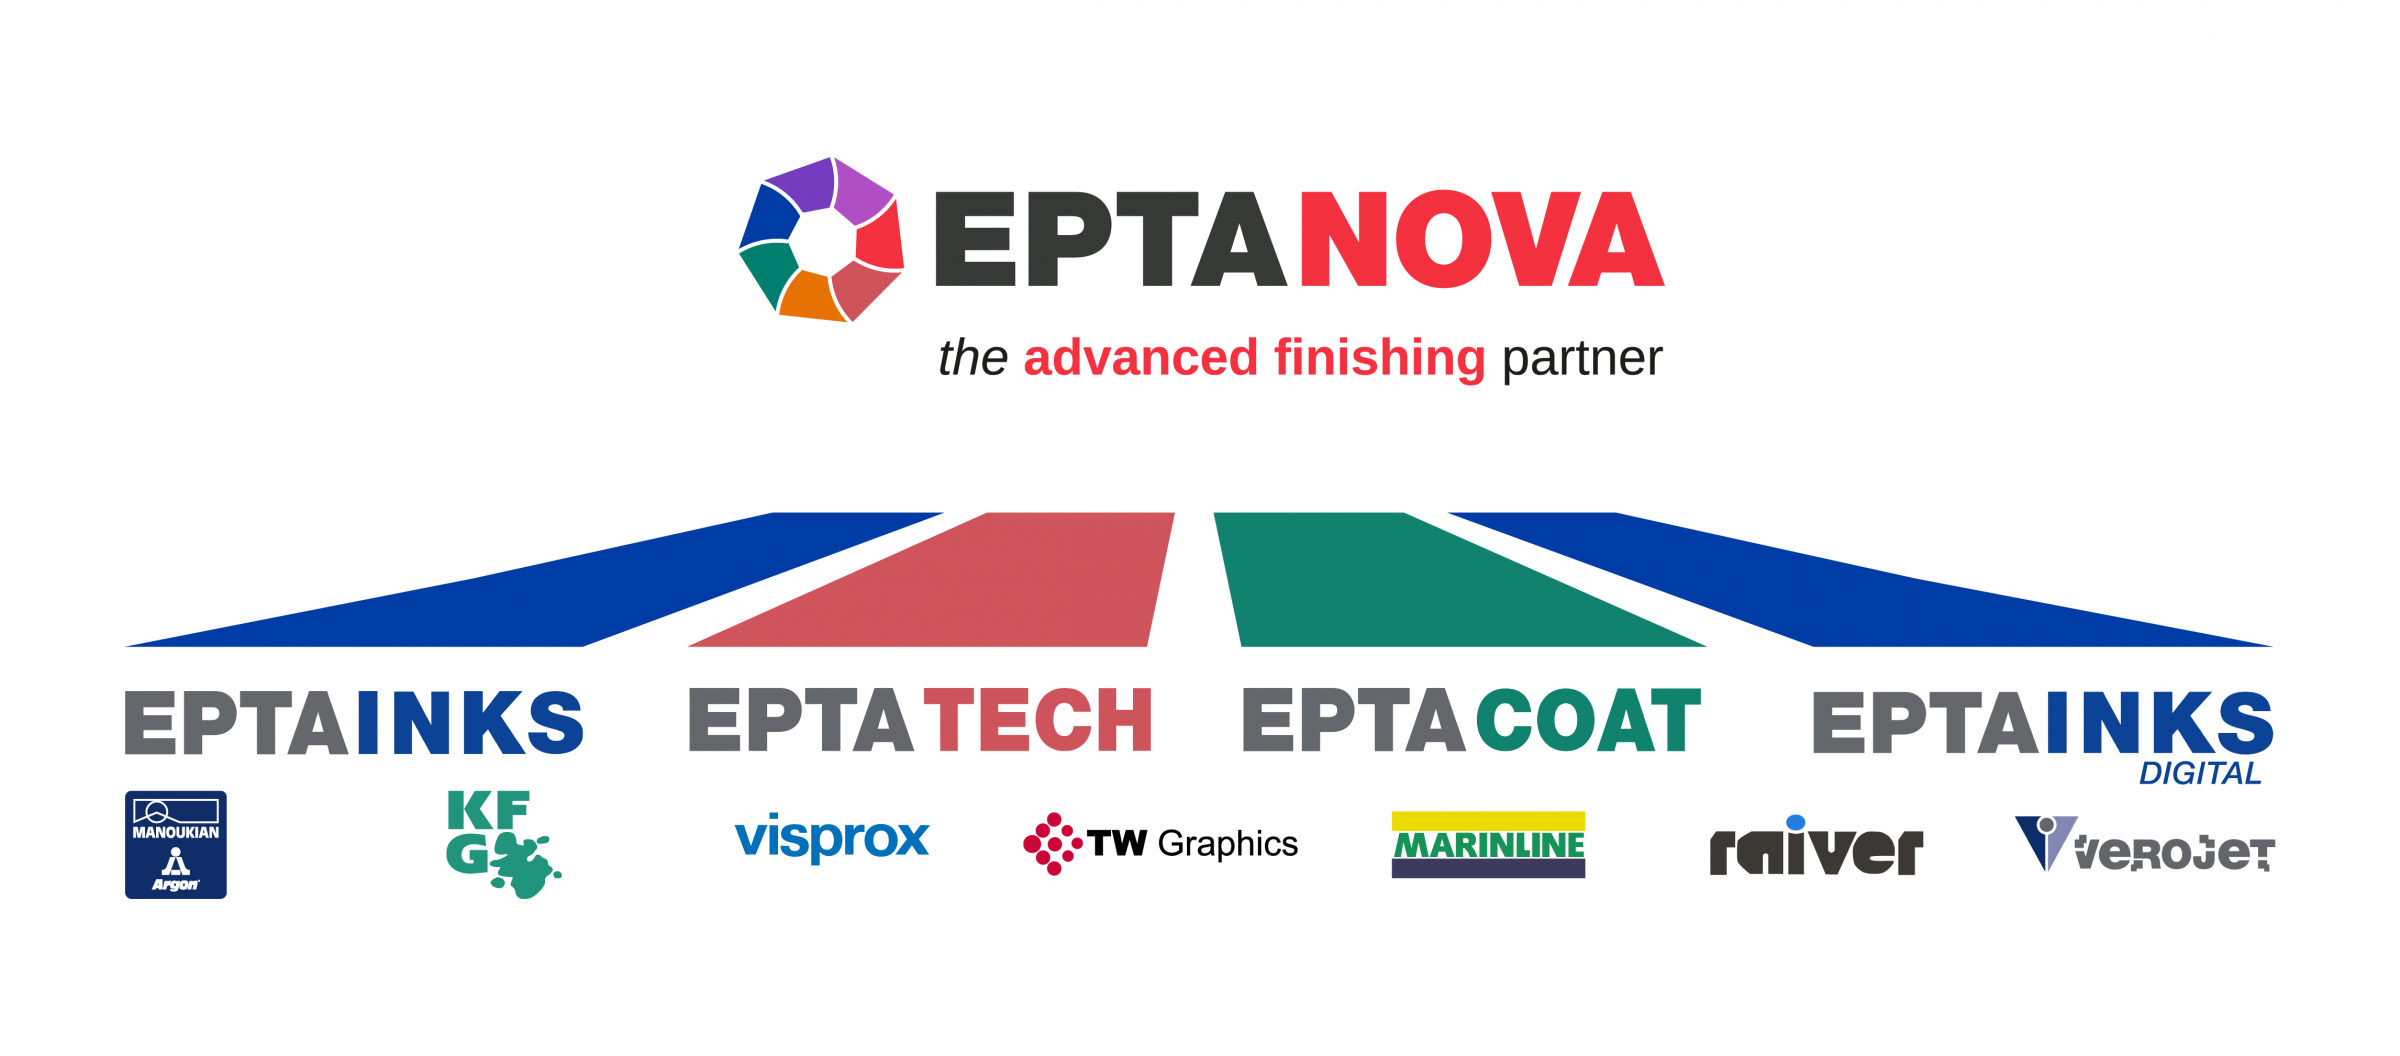 Eptanova Group